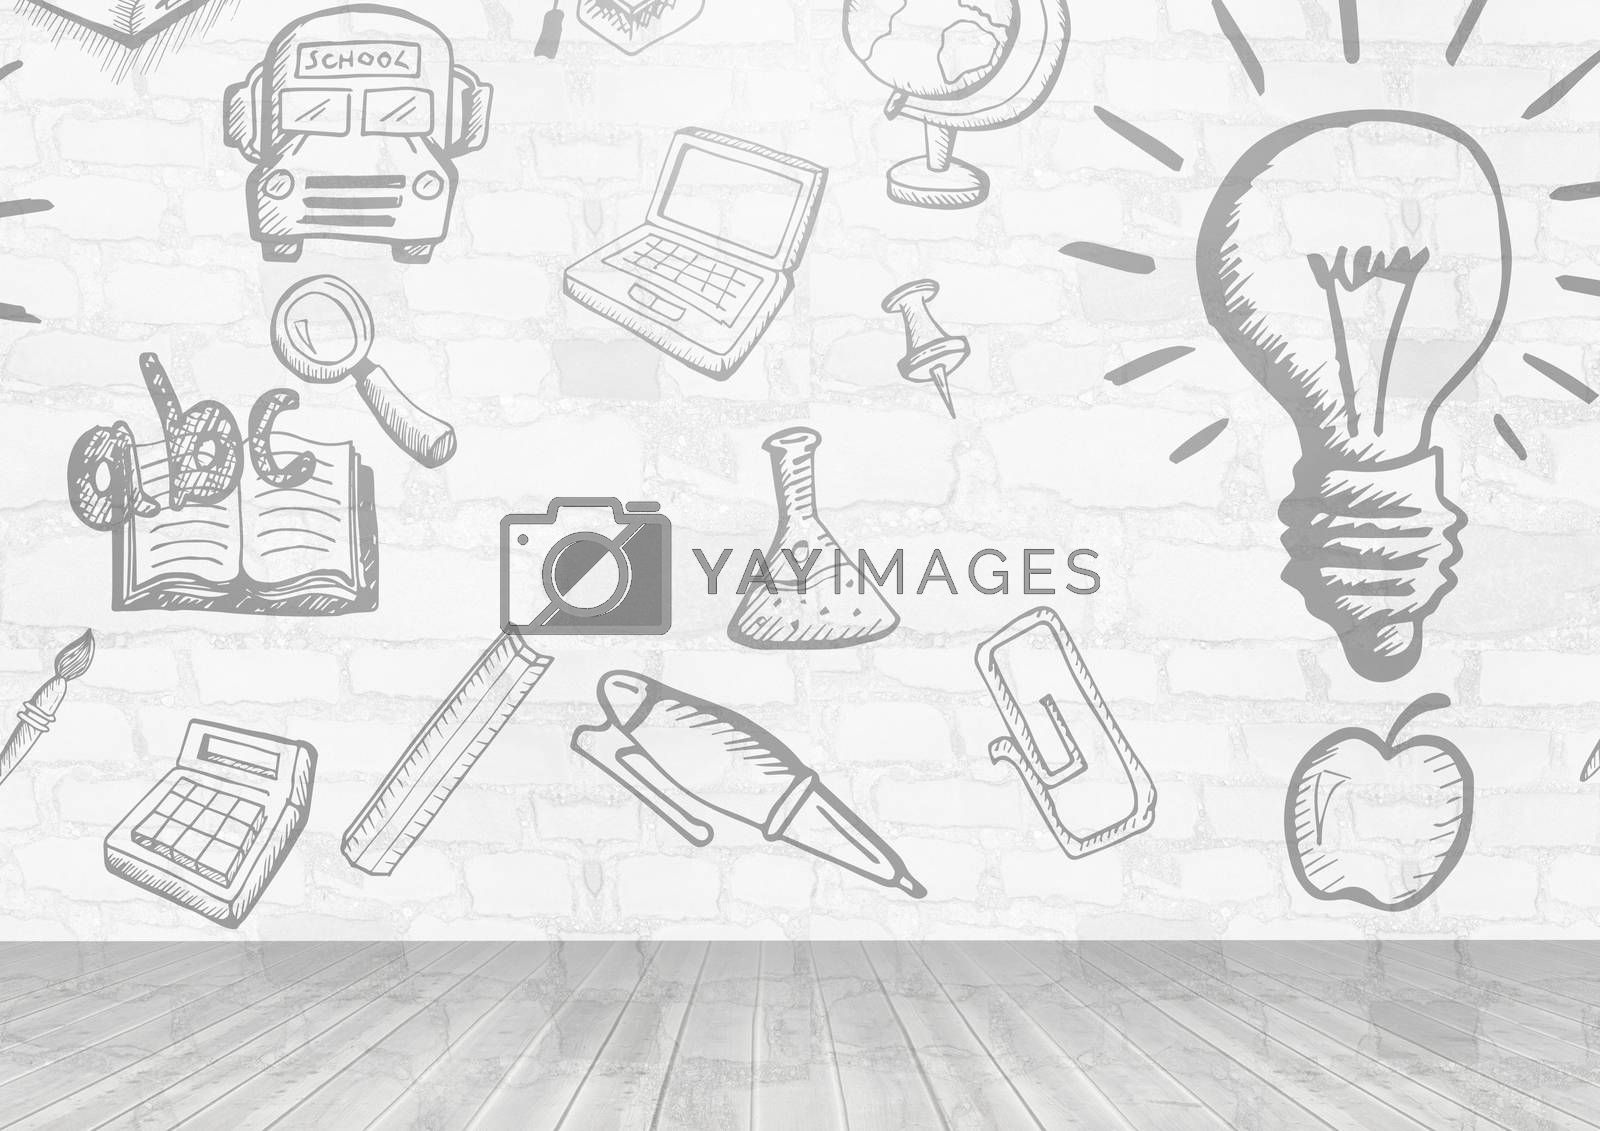 Digital composite of education learning graphics in room